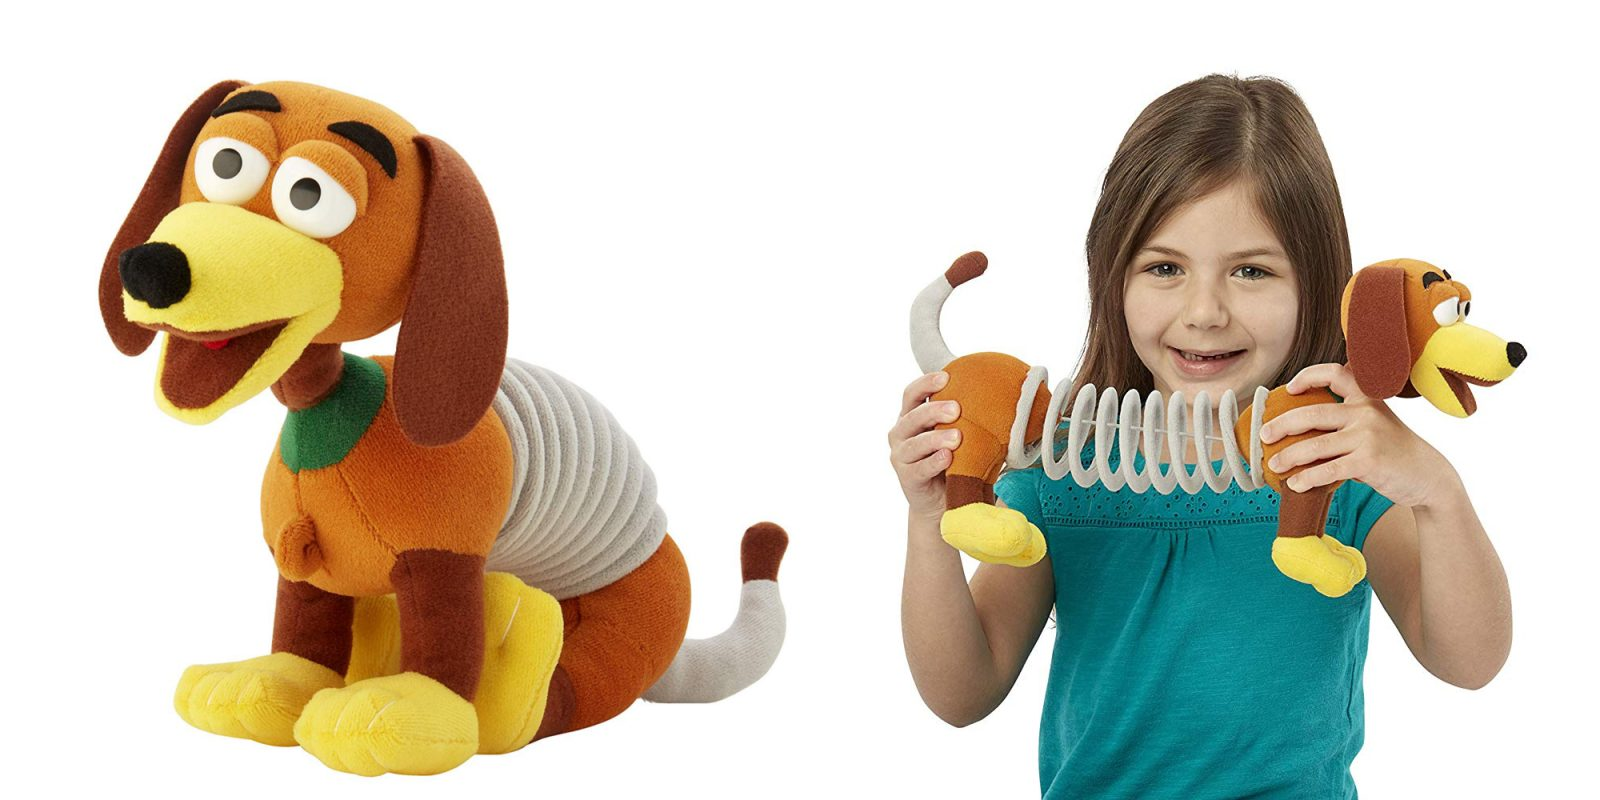 Slinky Toy Story 4 Plush Dog hits Amazon low + more kids' toys from $4.50